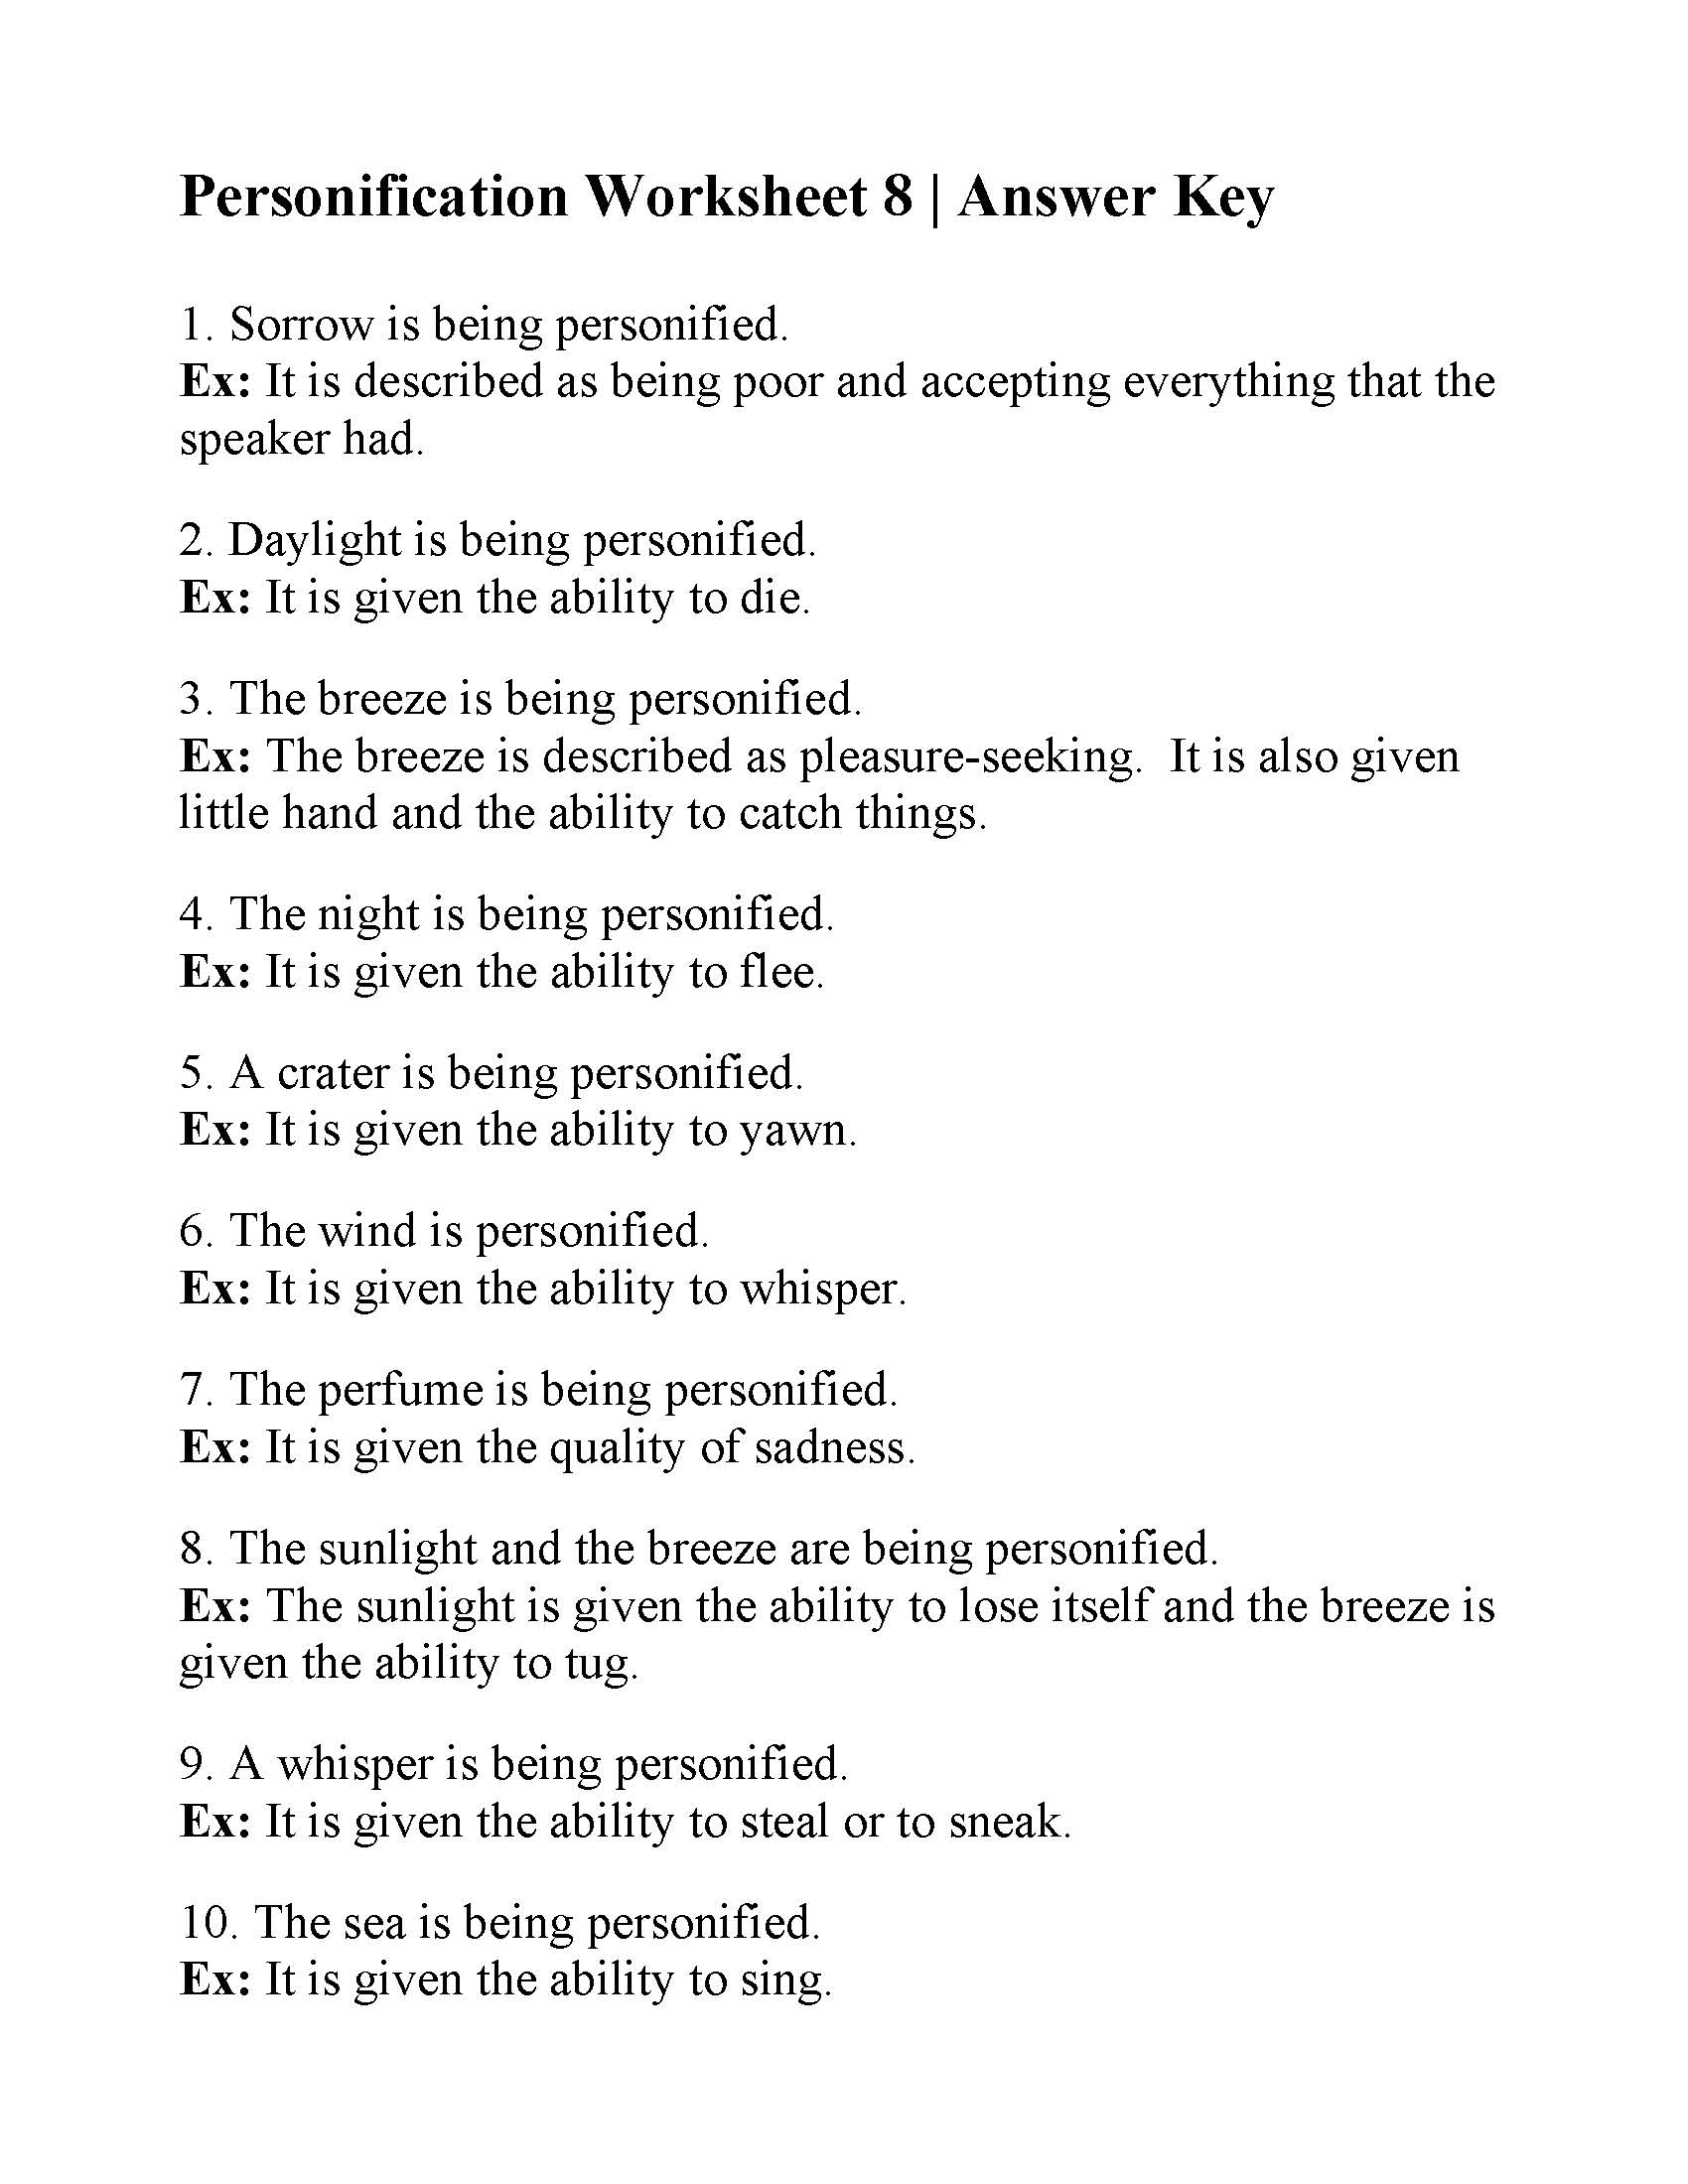 Personification Worksheet 8